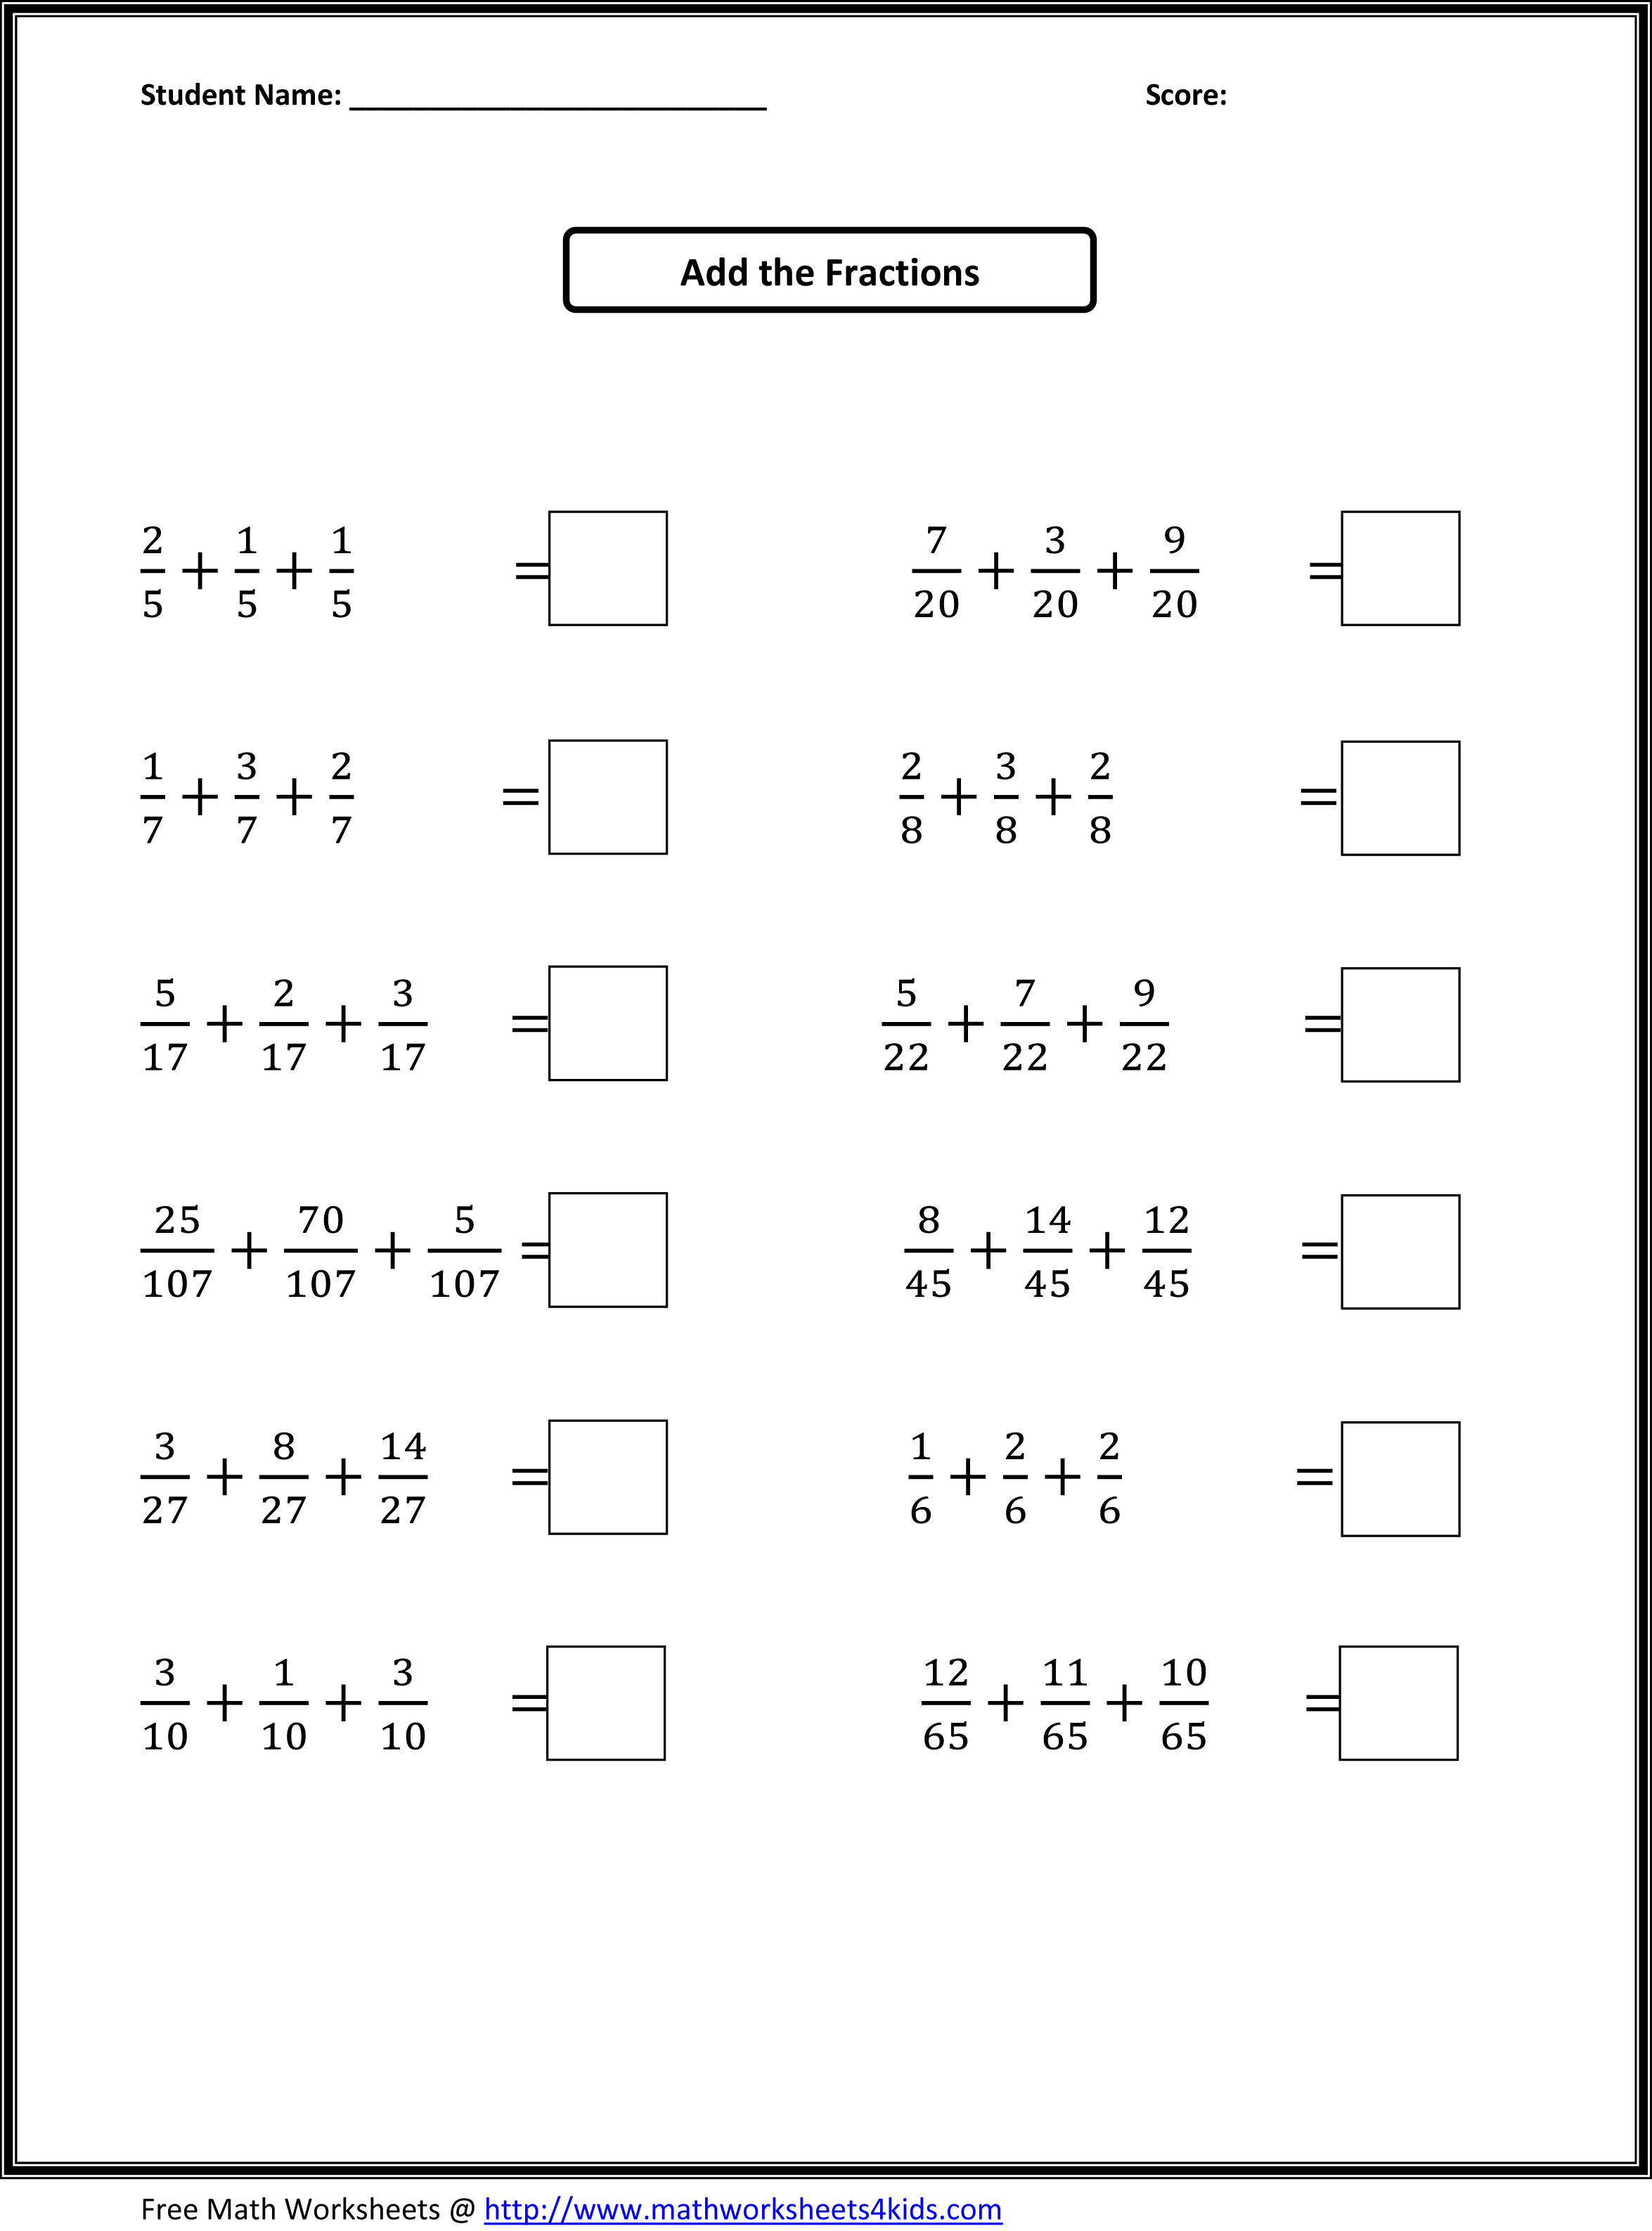 4th Grade Math Worksheets Multiplying Fractions | Kids Activities